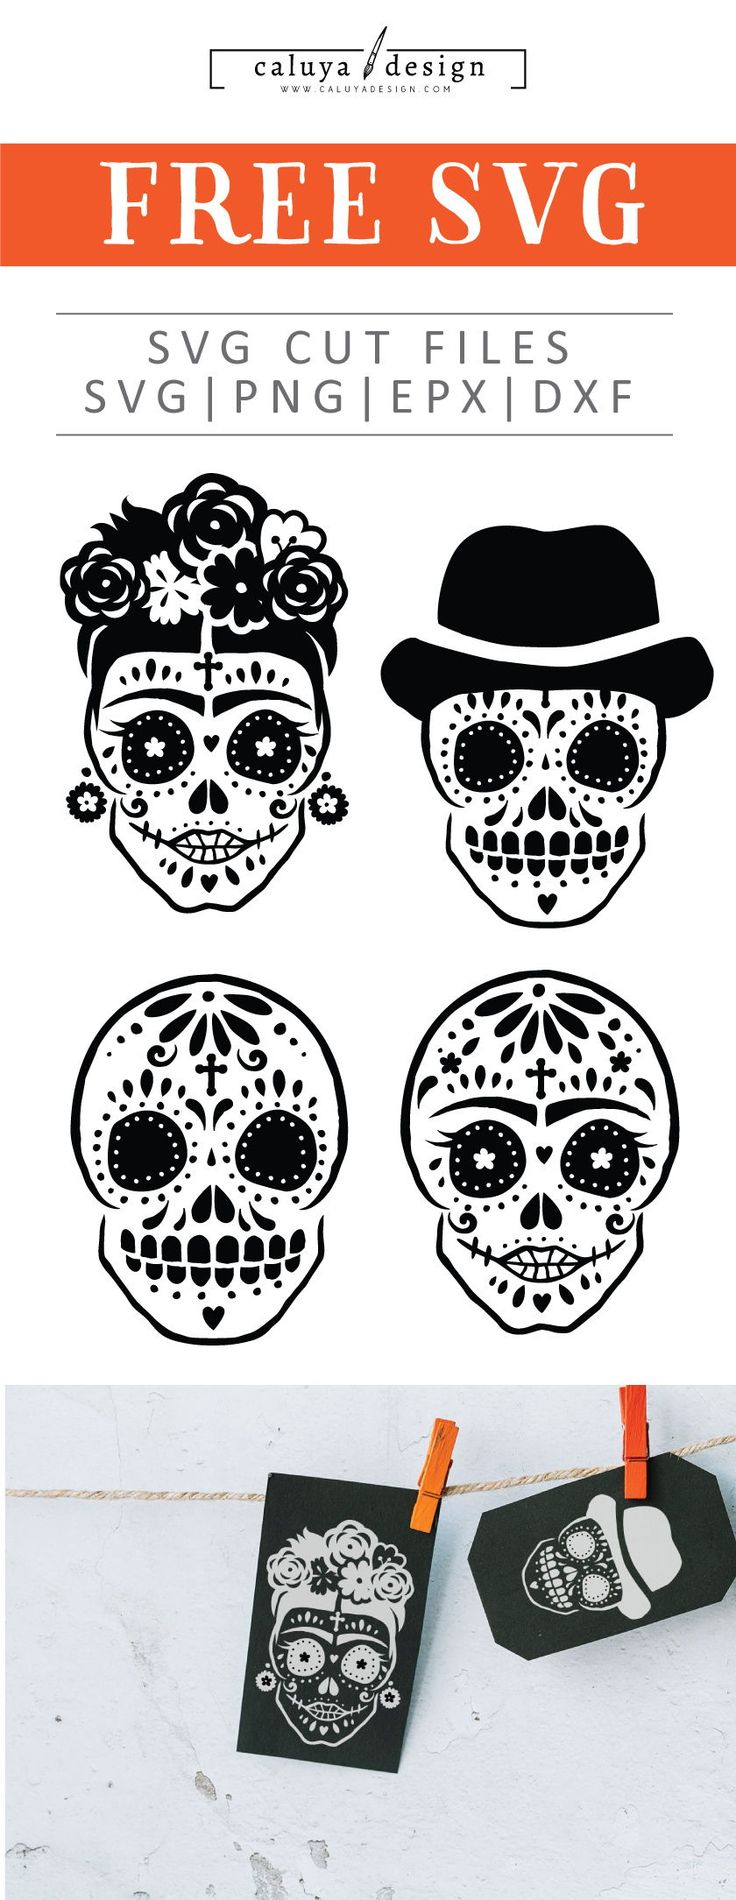 Free Hand-drawn Sugar Skull SVG, PNG, EPS & DXF by